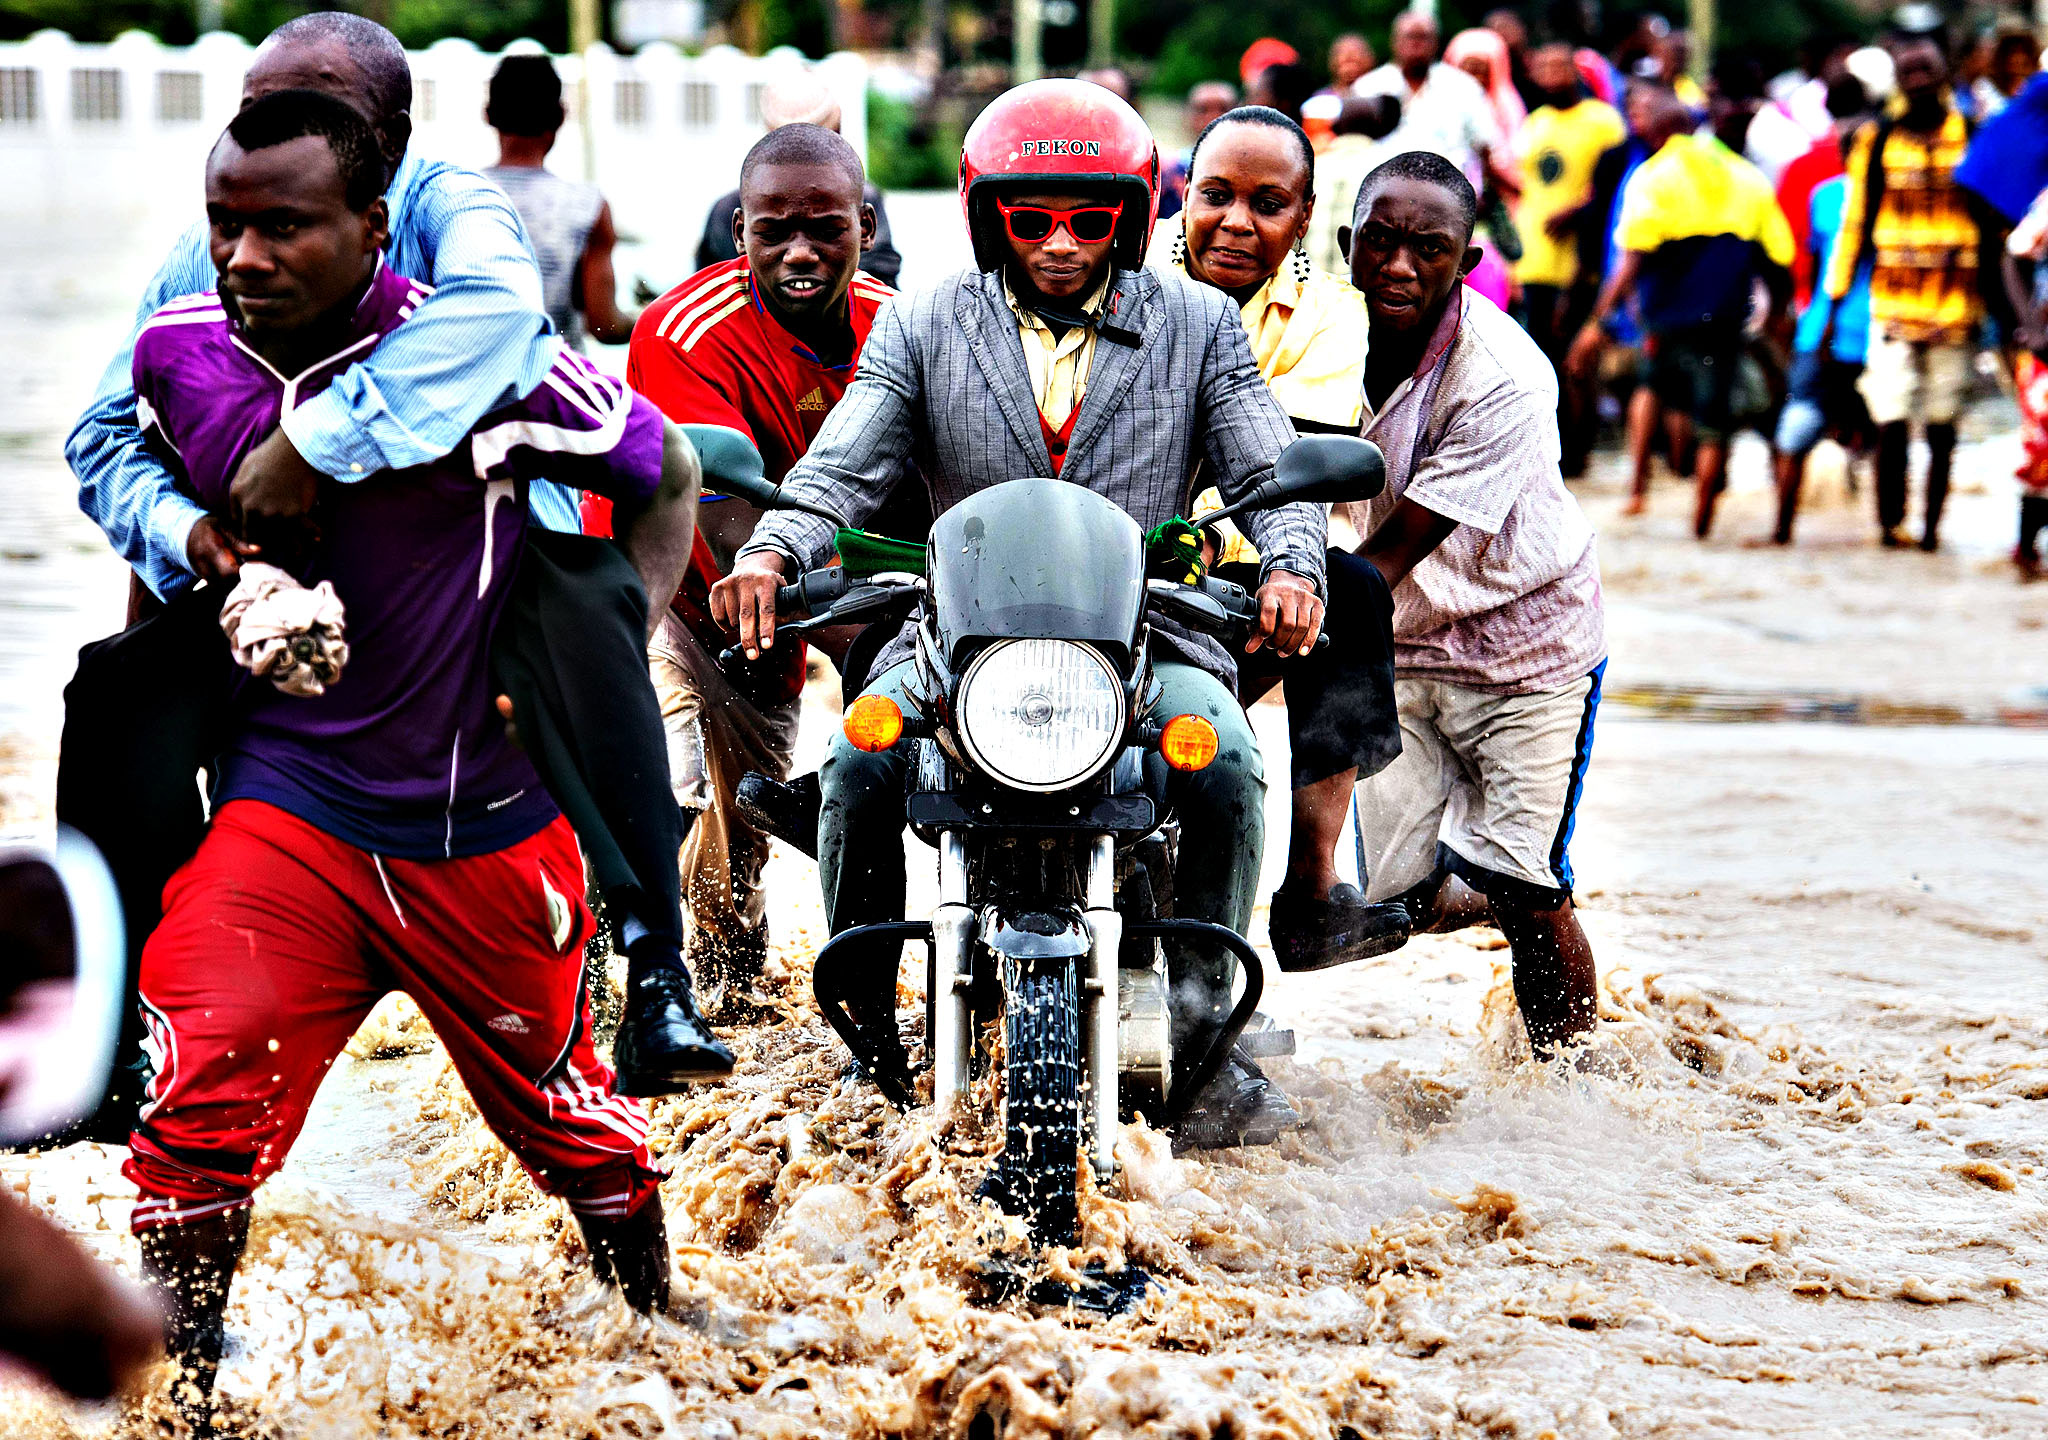 Pedestrians pay for piggy-back rides across flooded Morogoro Road in Dar es Salaam, Tanzania, on Thursday